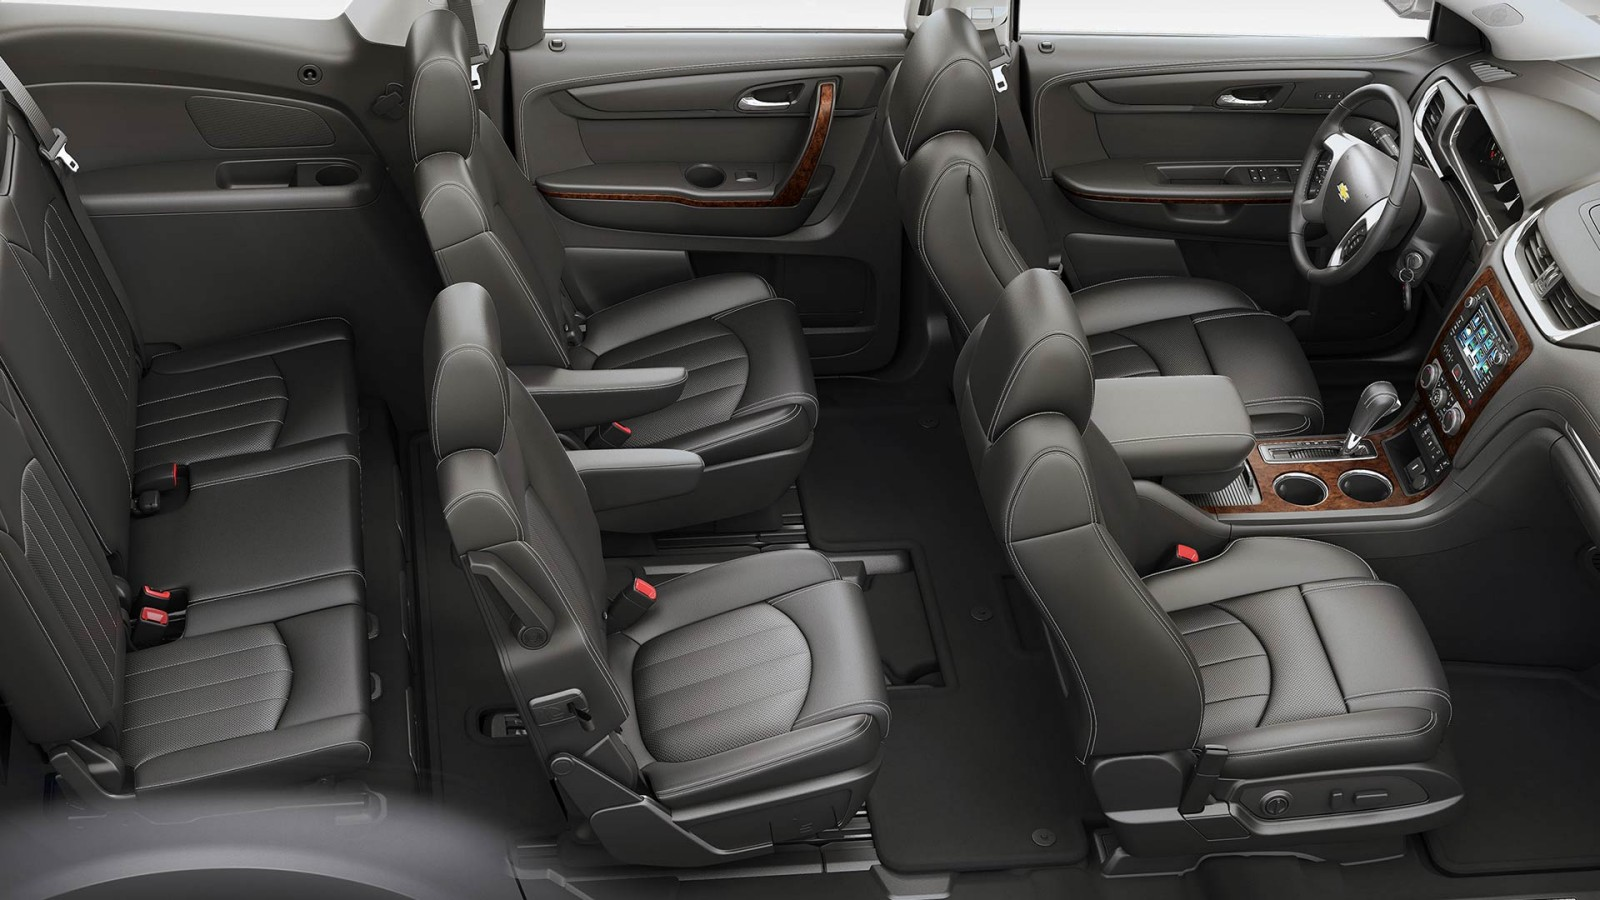 Three Rows of Seating in the 2016 Traverse